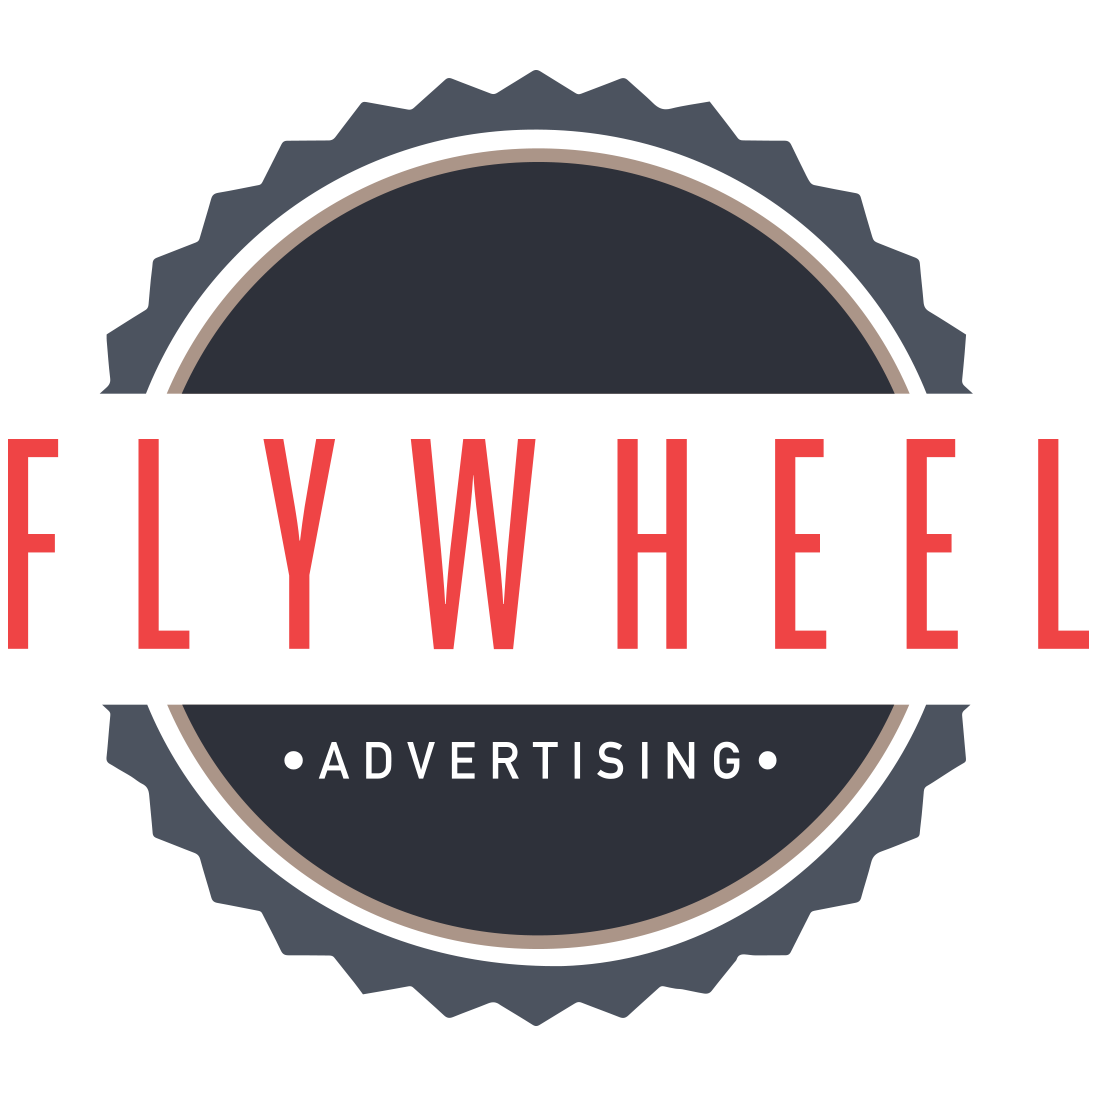 Flywheel Advertising | Columbus Ohio Digital Marketing Agency